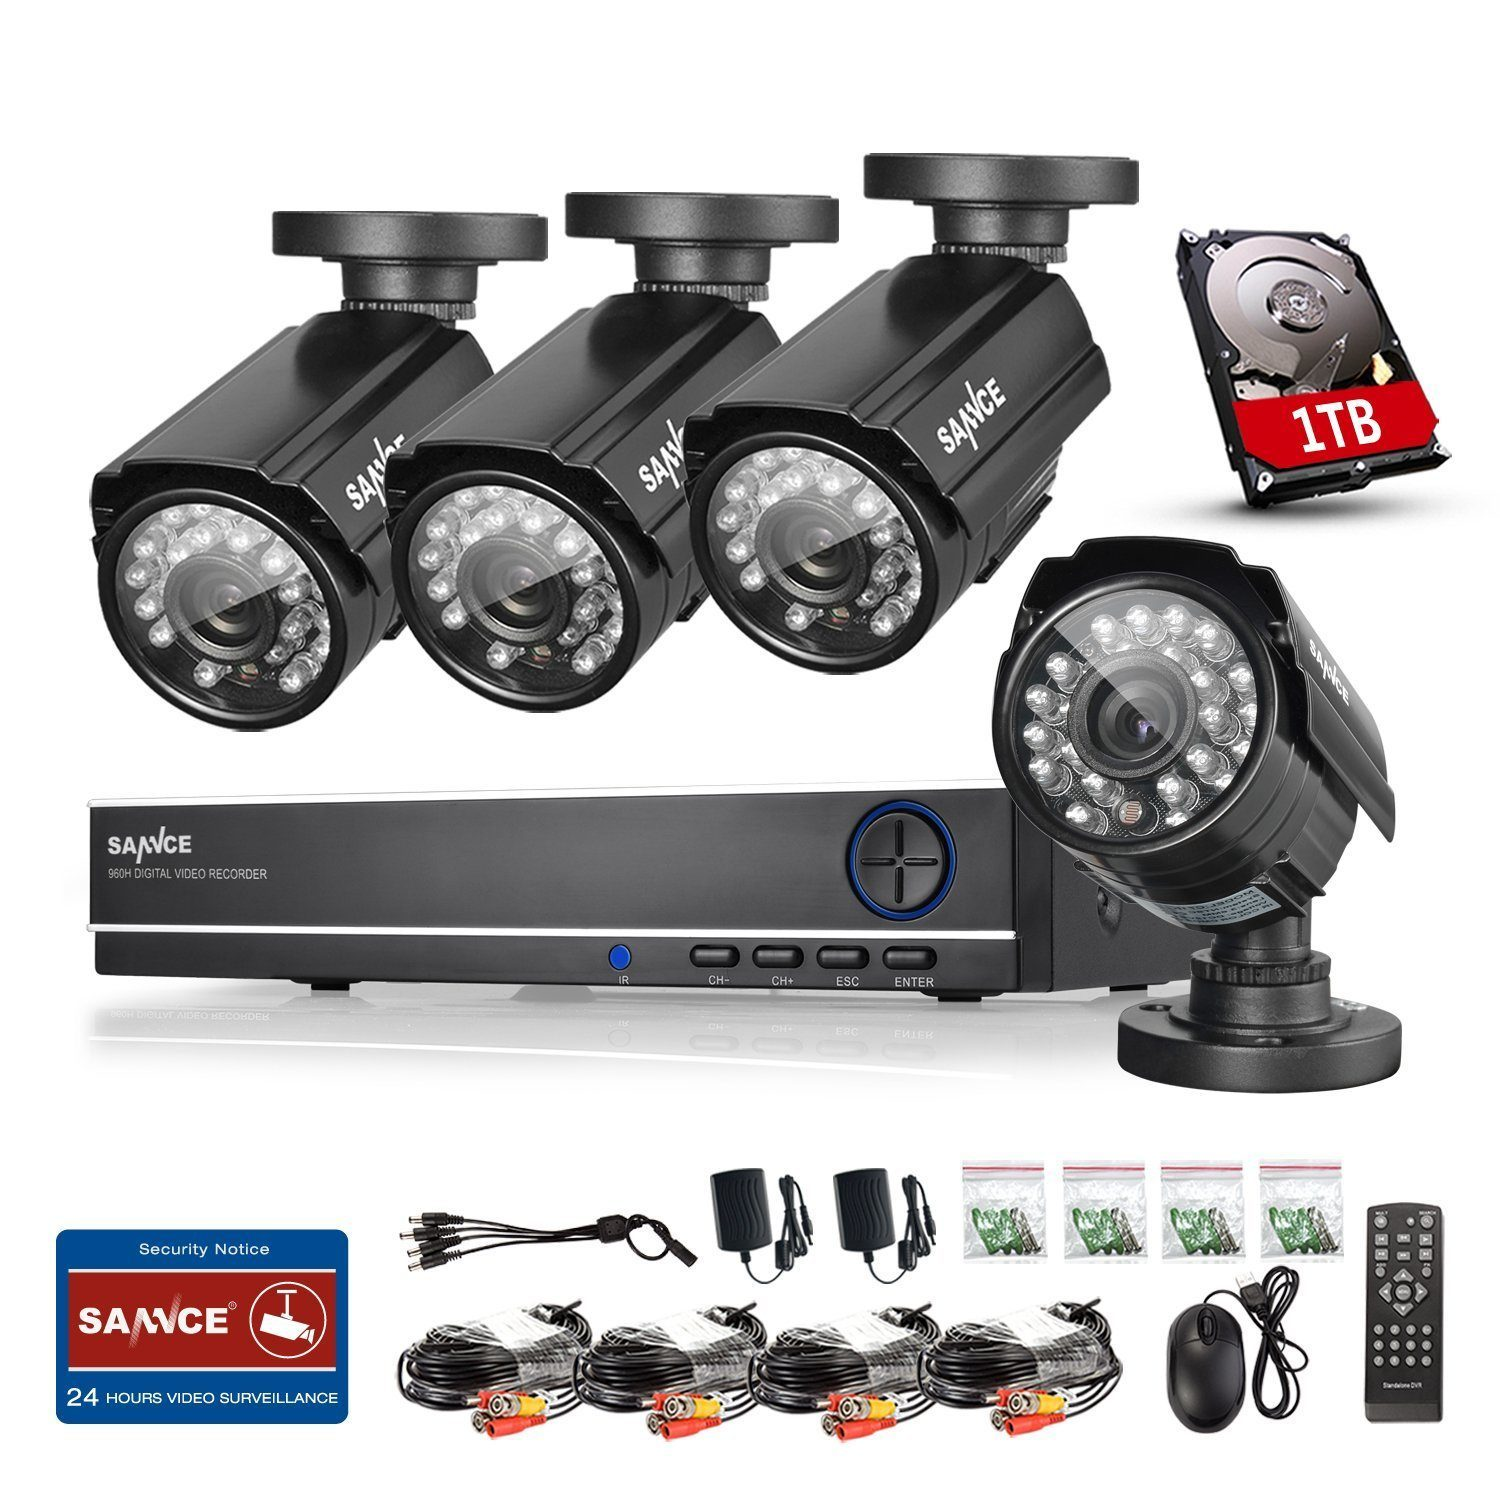 sannce cctv review